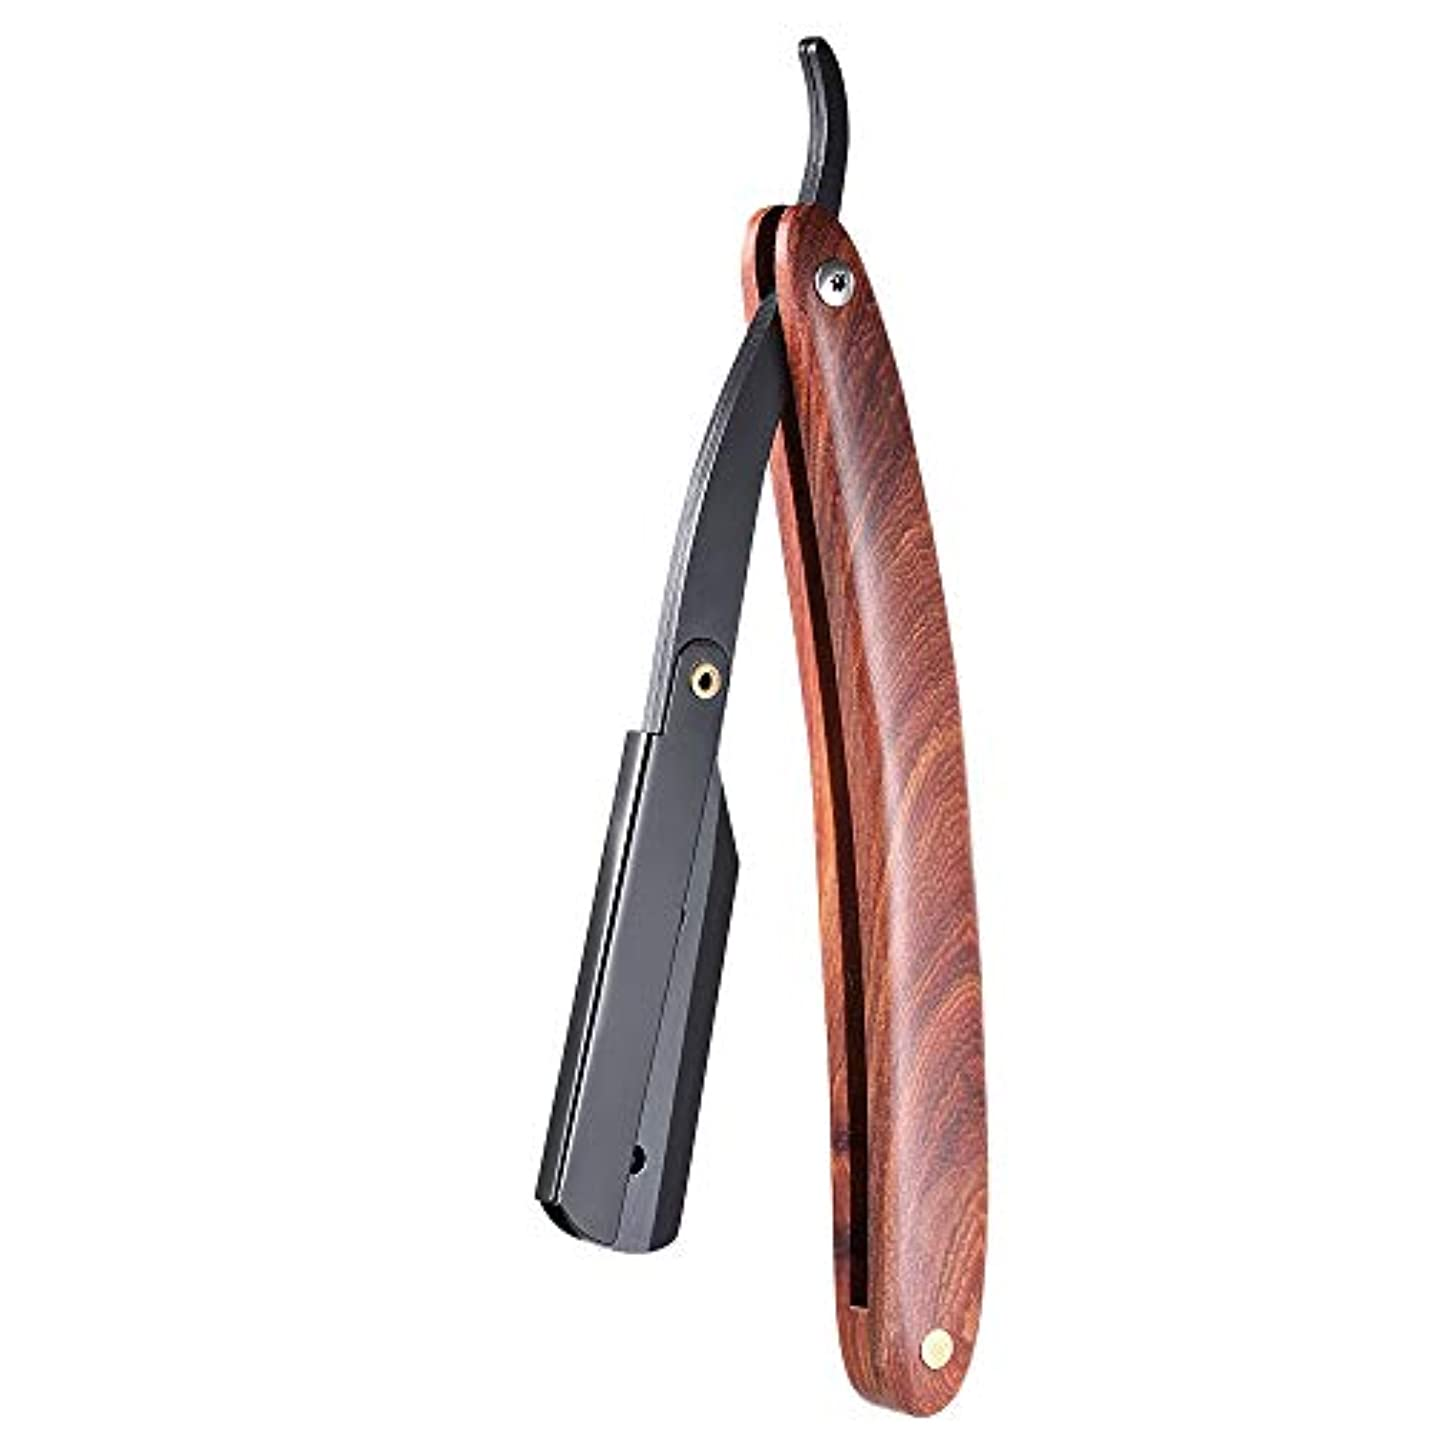 ピニオン馬鹿げたフェードアウトMen Shaving Straight Edge Razor Stainless Steel Manual Razor Wooden Handle Folding Shaving Knife Shave Beard Cutter...